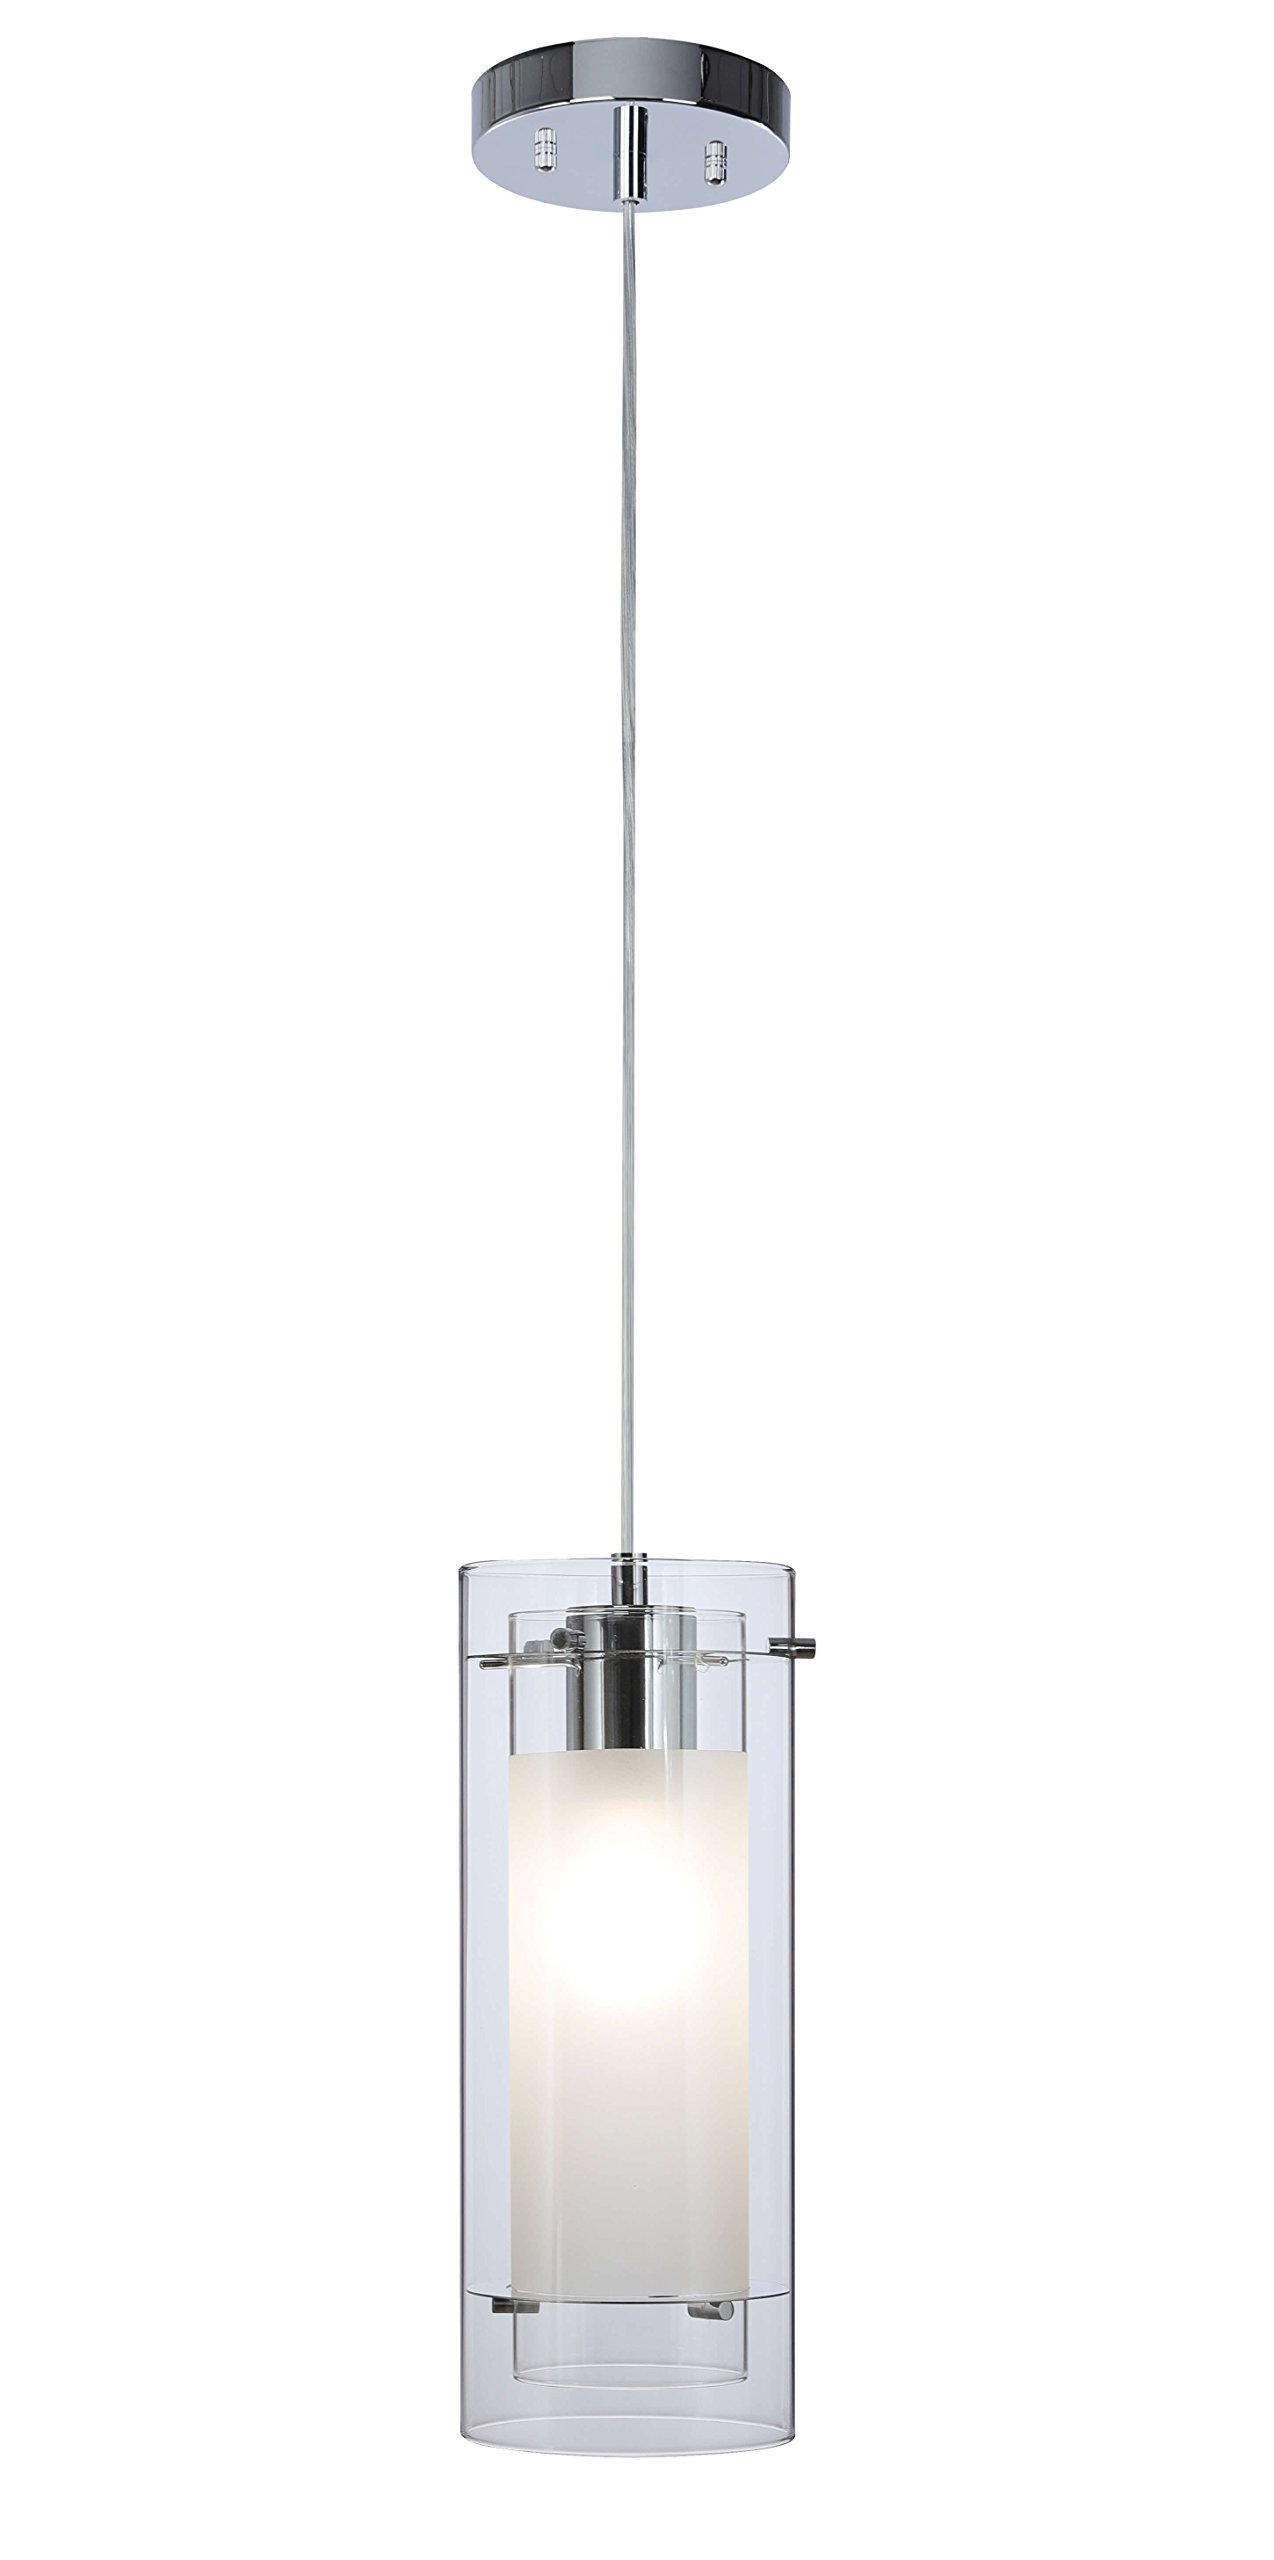 Pendant Lighting Contemporary 1 Light Pendant Hanging Light with Clear and Frost Glass in Chrome Mini Pendant Light XiNBEi-Lighting XB-P1159-CH